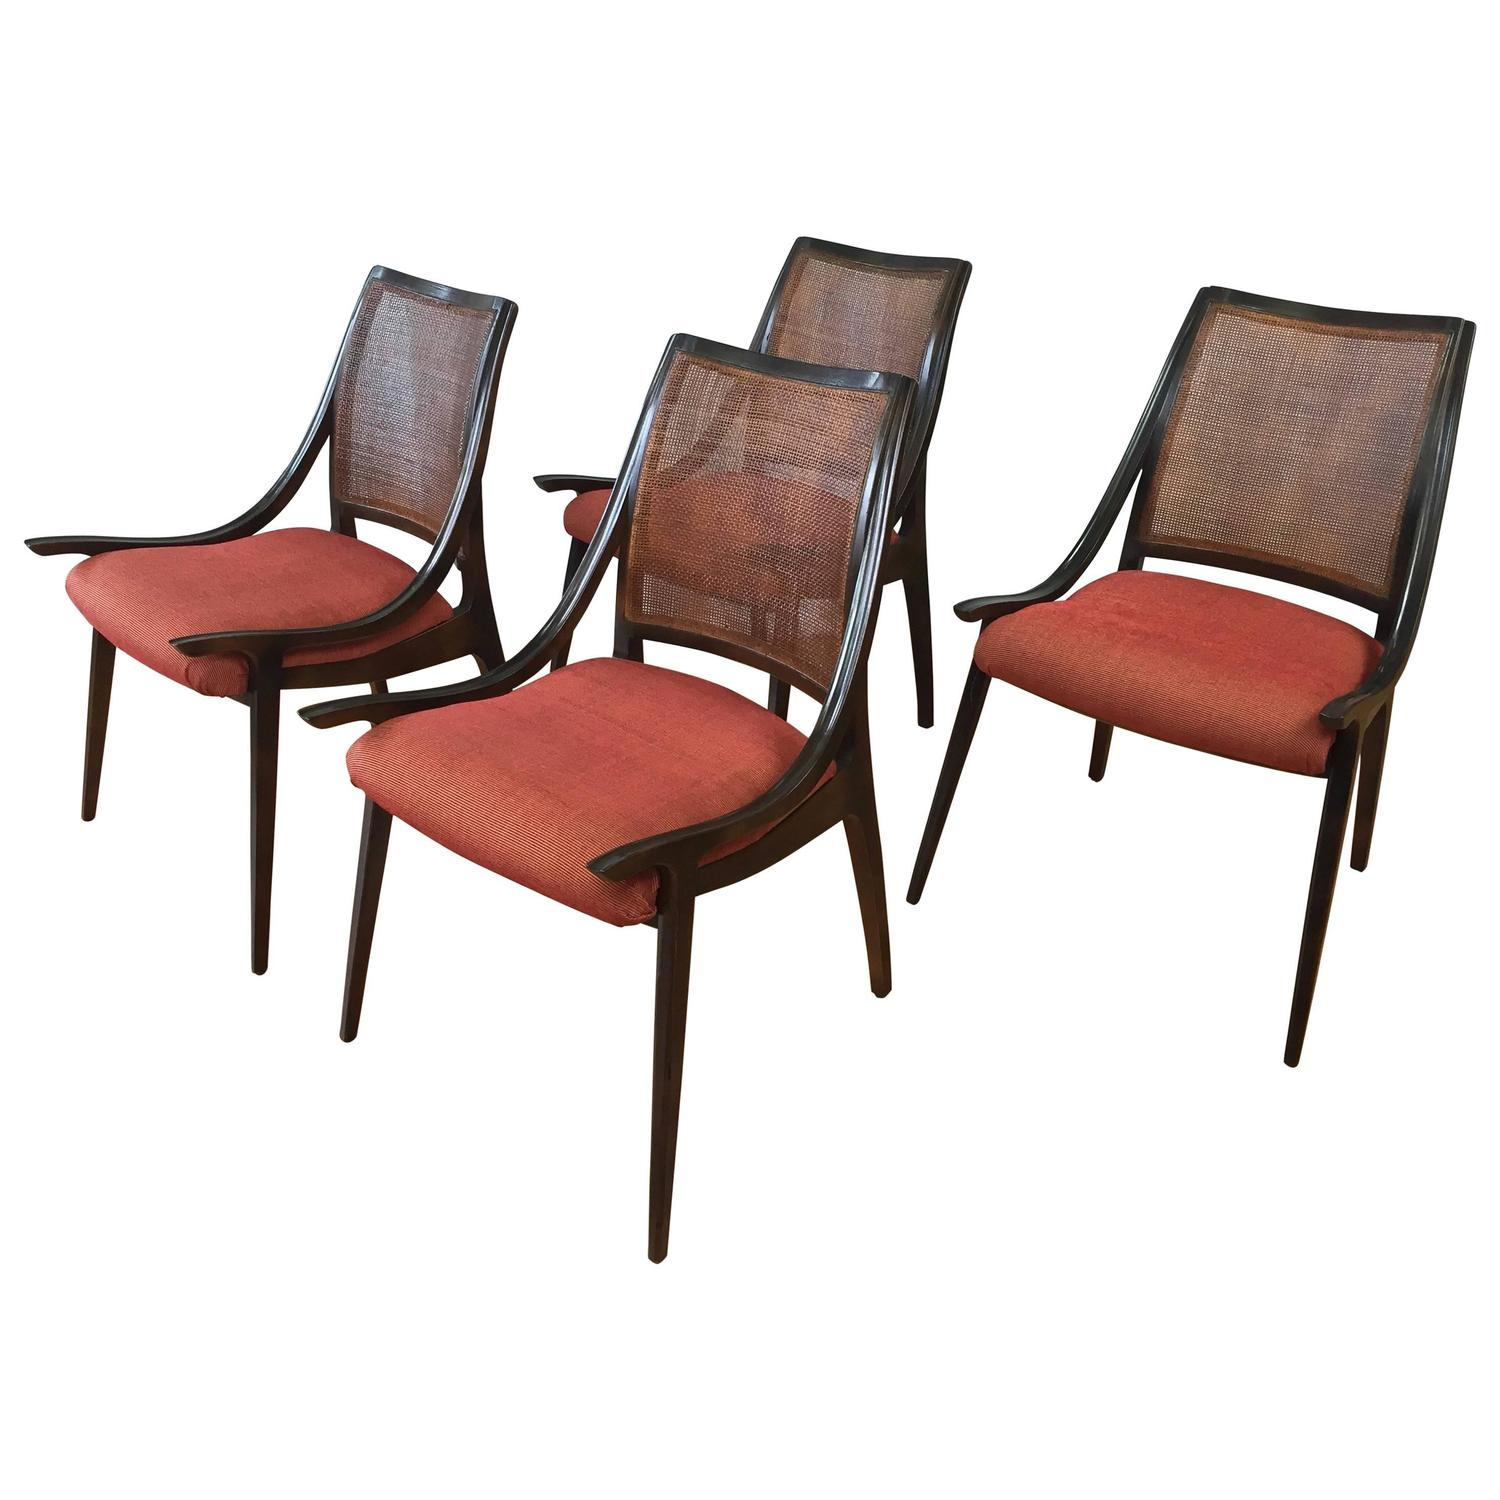 Four Cane Back Walnut Dining Chairs by Richard Thompson for Glenn